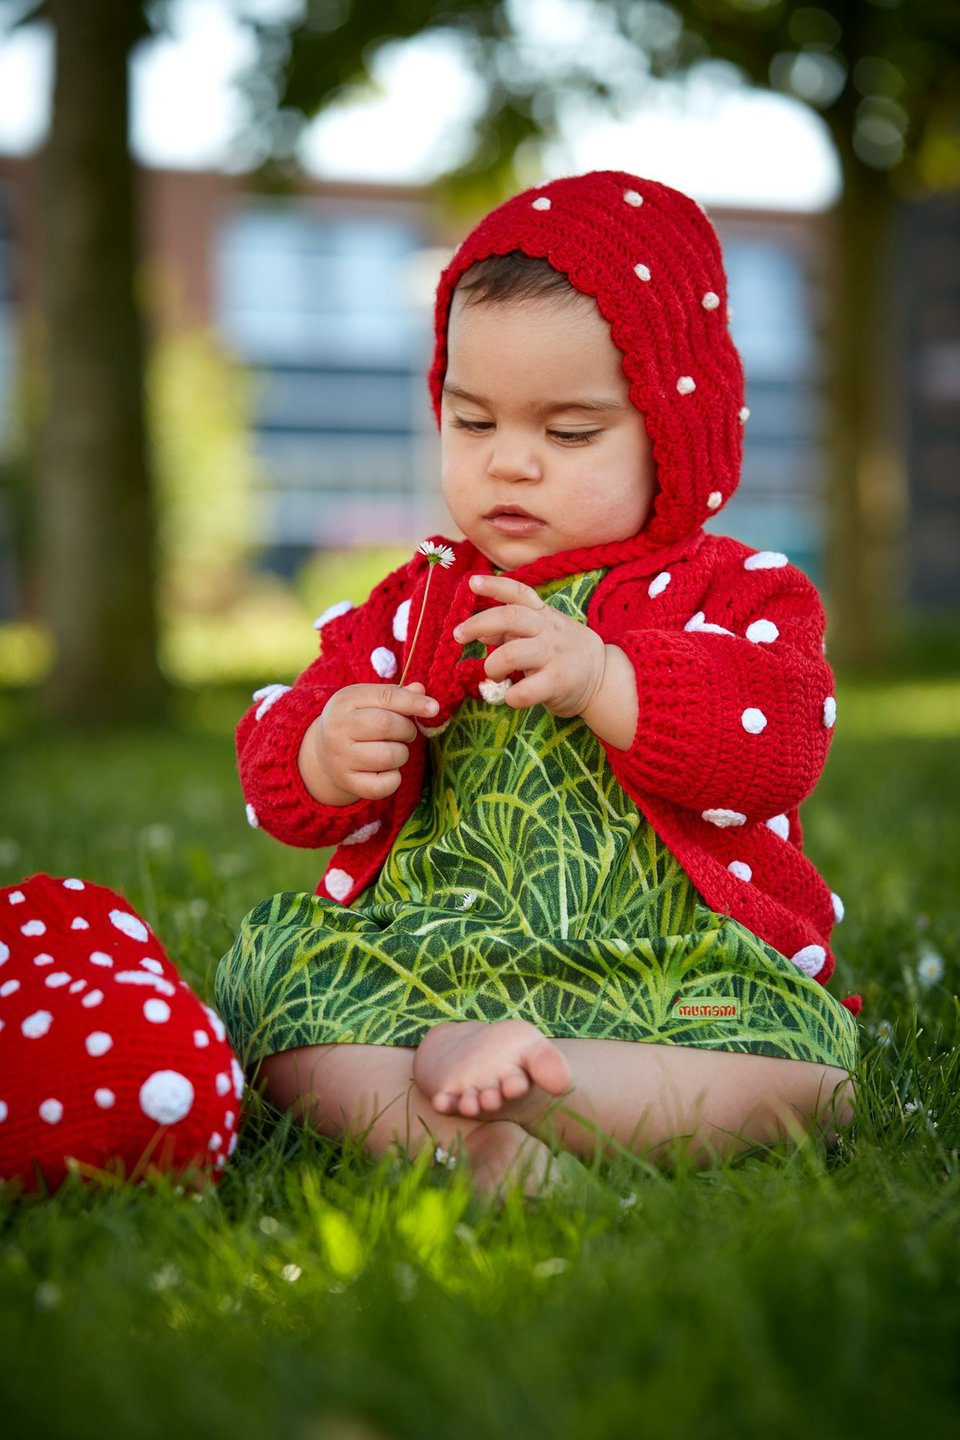 Little Red Ridinghood Hat #1